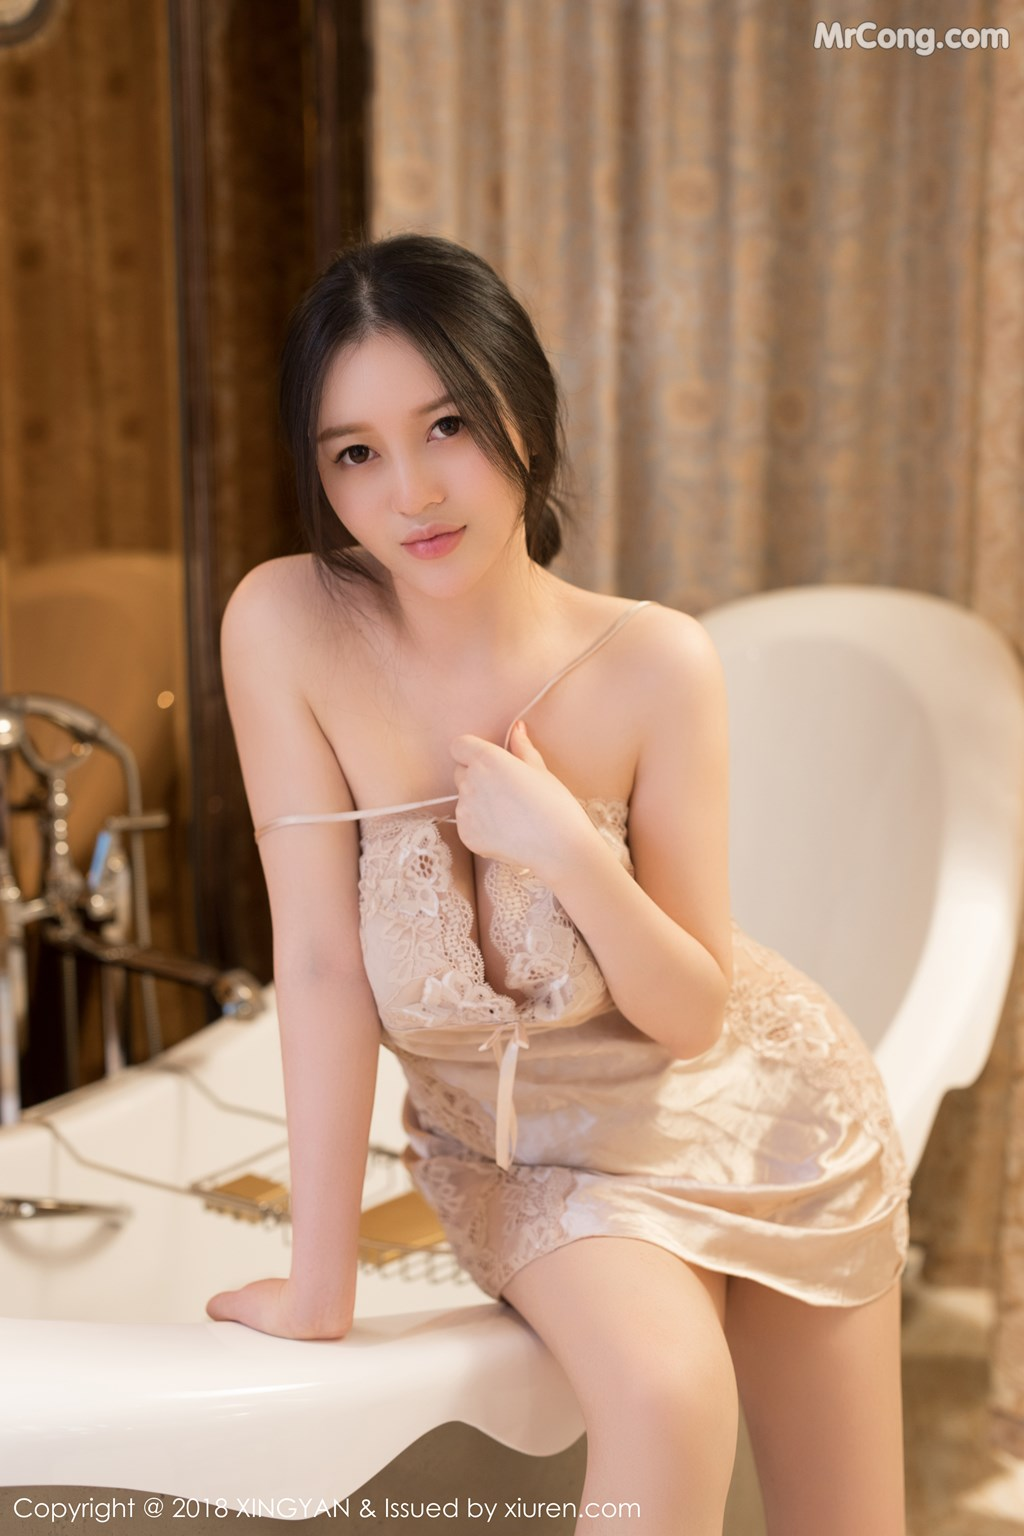 anh-sexy-2